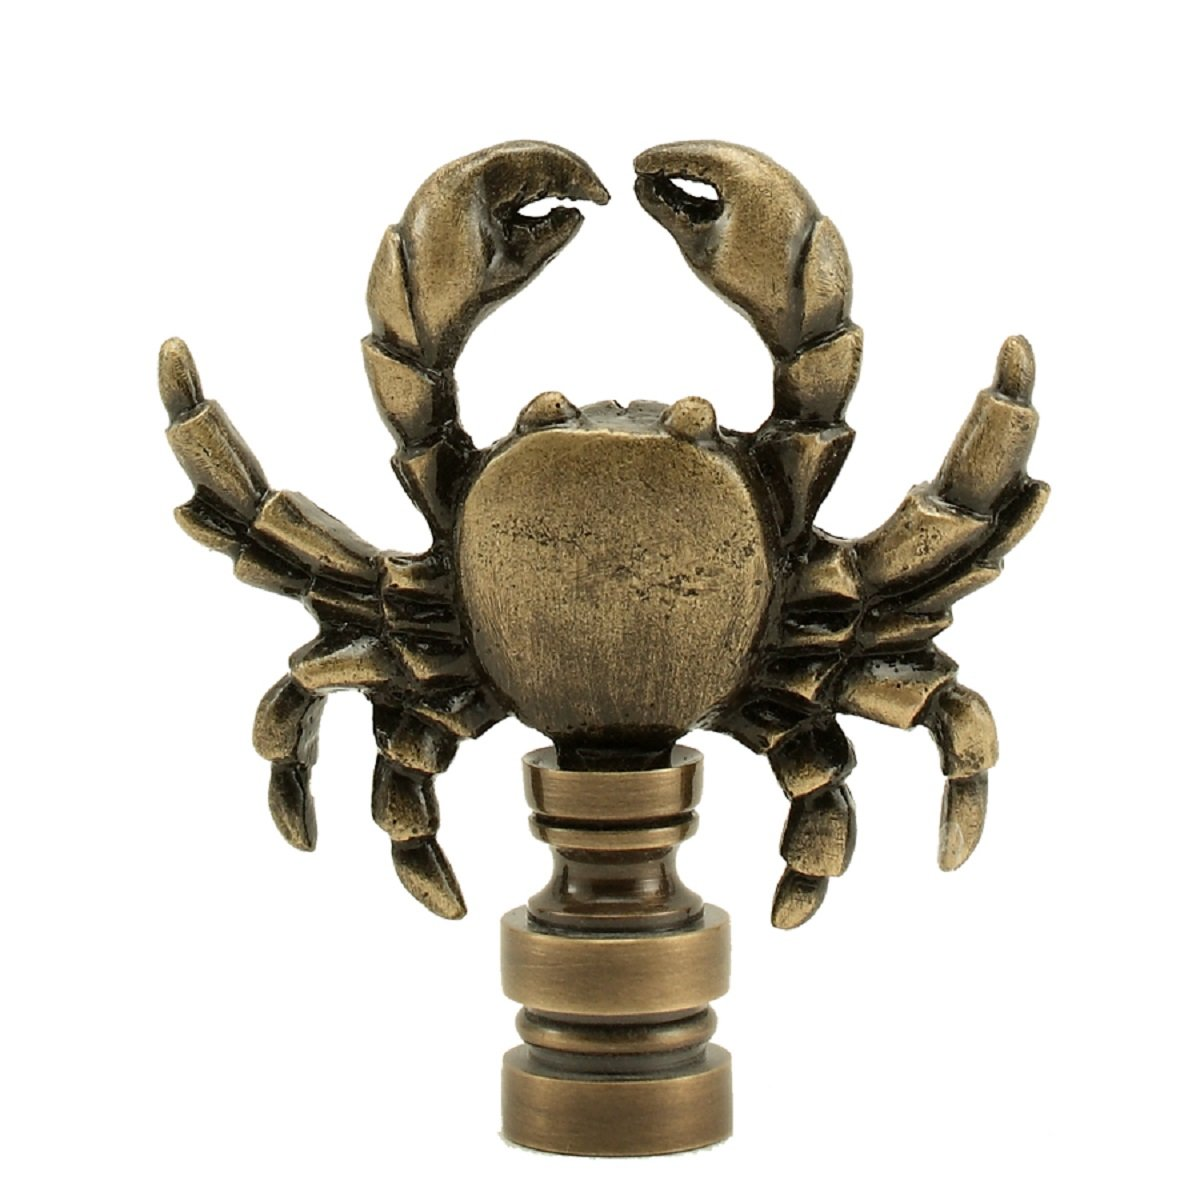 Sea Animal Lamp Finial Your Choice of Big Fish or Crab -2.25 Inches High - Antiqued finish (Crab)